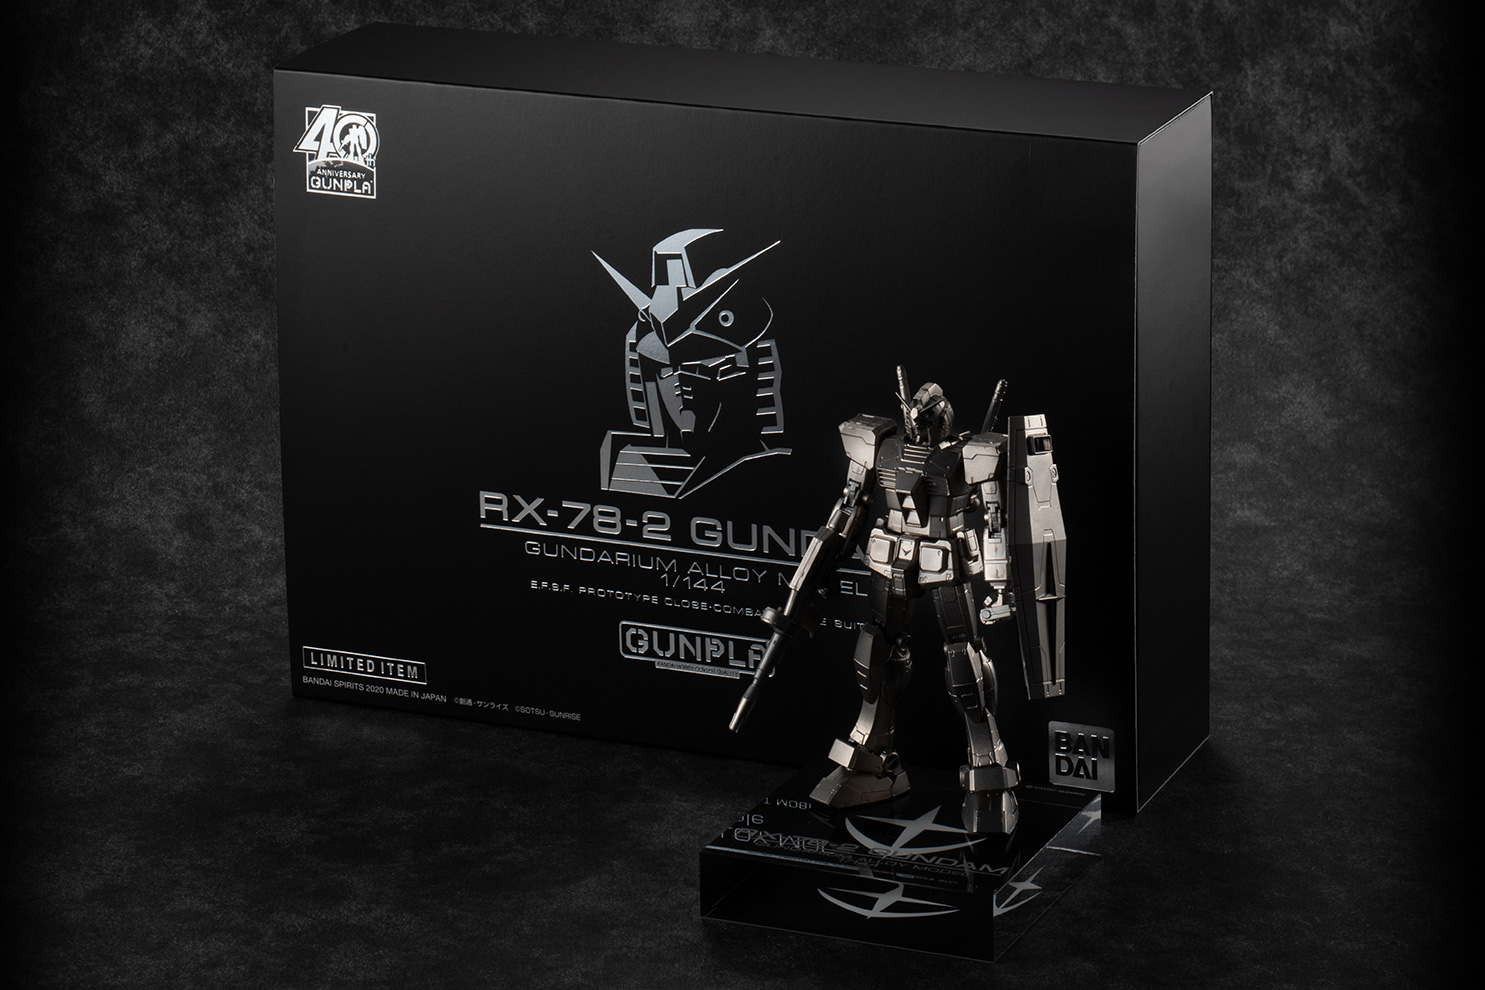 Bandai Spirits Crafts RX-78-2 Gundam Out of Gundarium Alloy